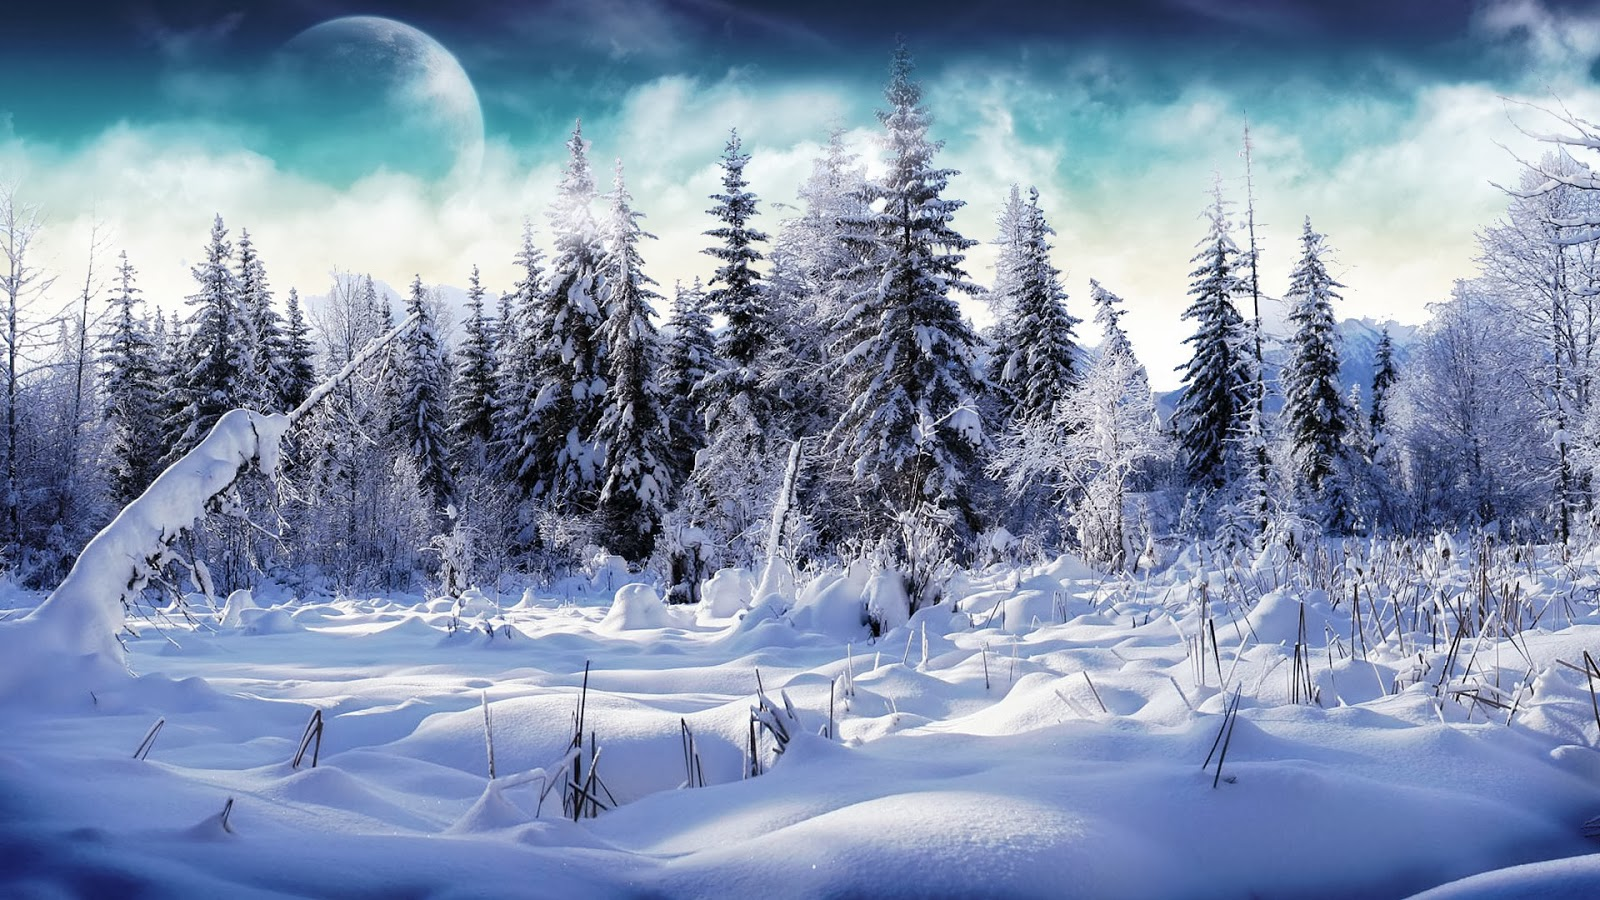 Snow Fall Winter HD Wallpapers